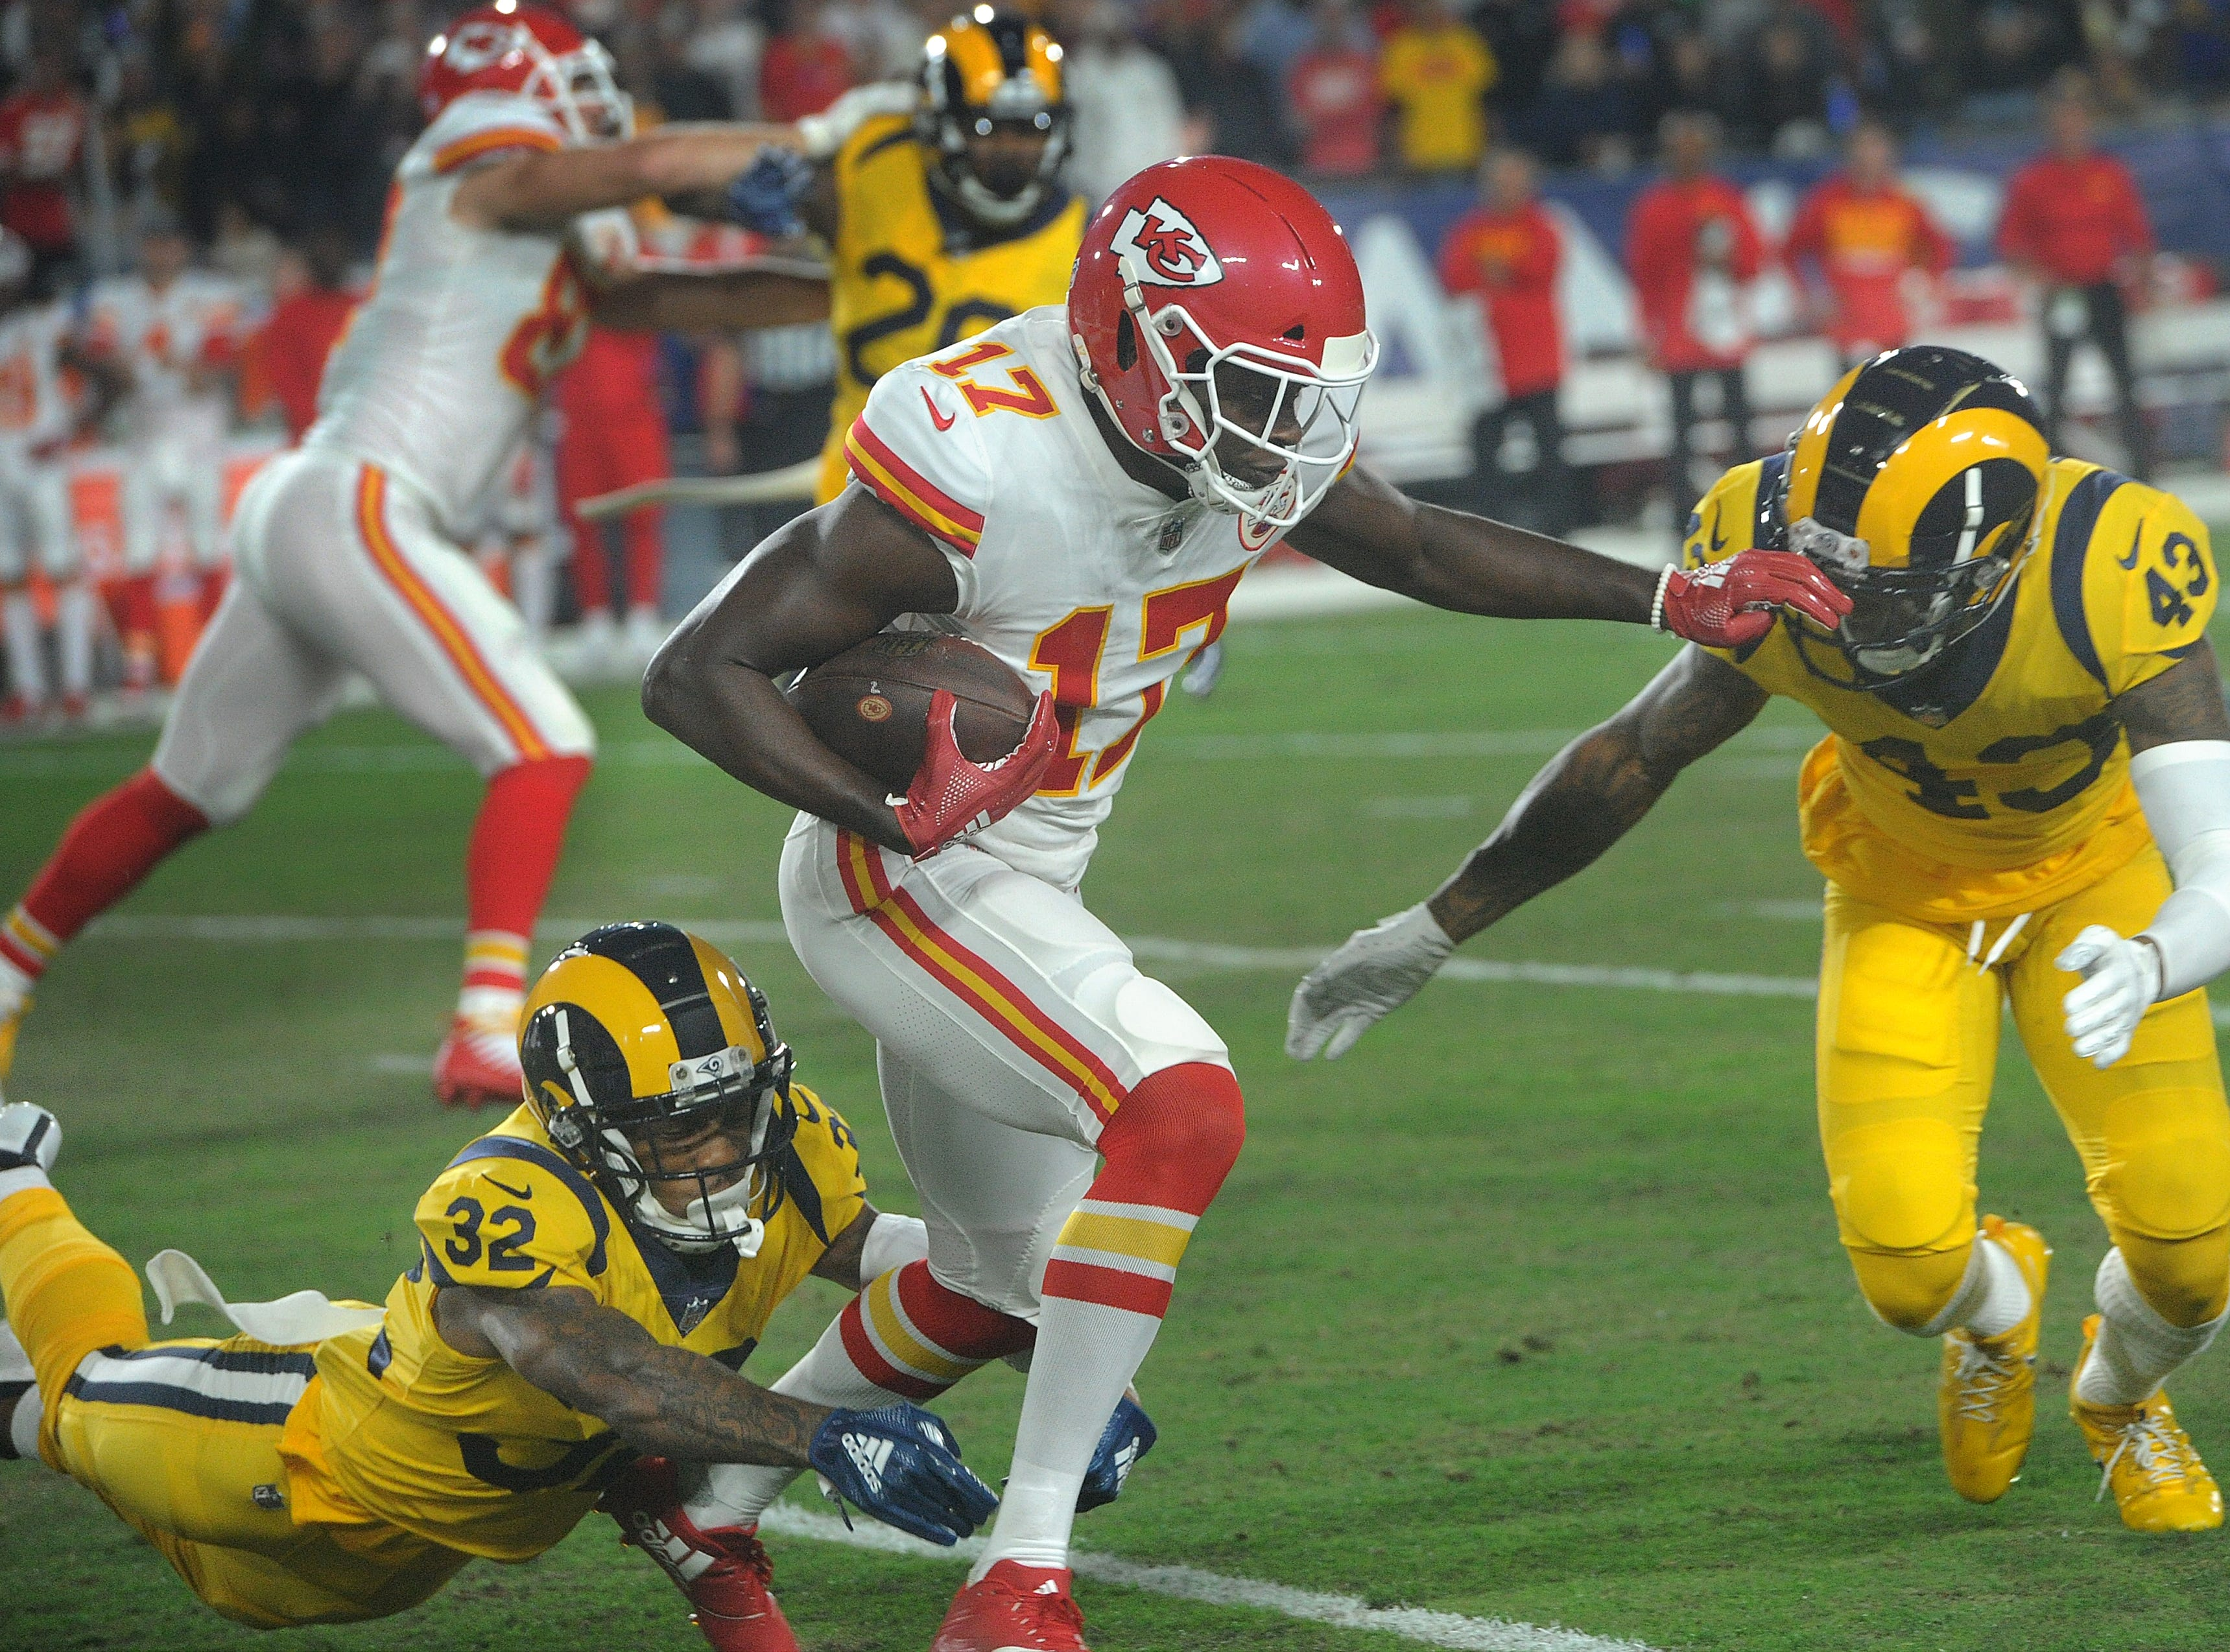 The Chiefs' Chris Conley, center, catches a pass as Troy Hill, left, and John Johnson lll converge for the tackle on Monday against the Rams at the Coliseum.